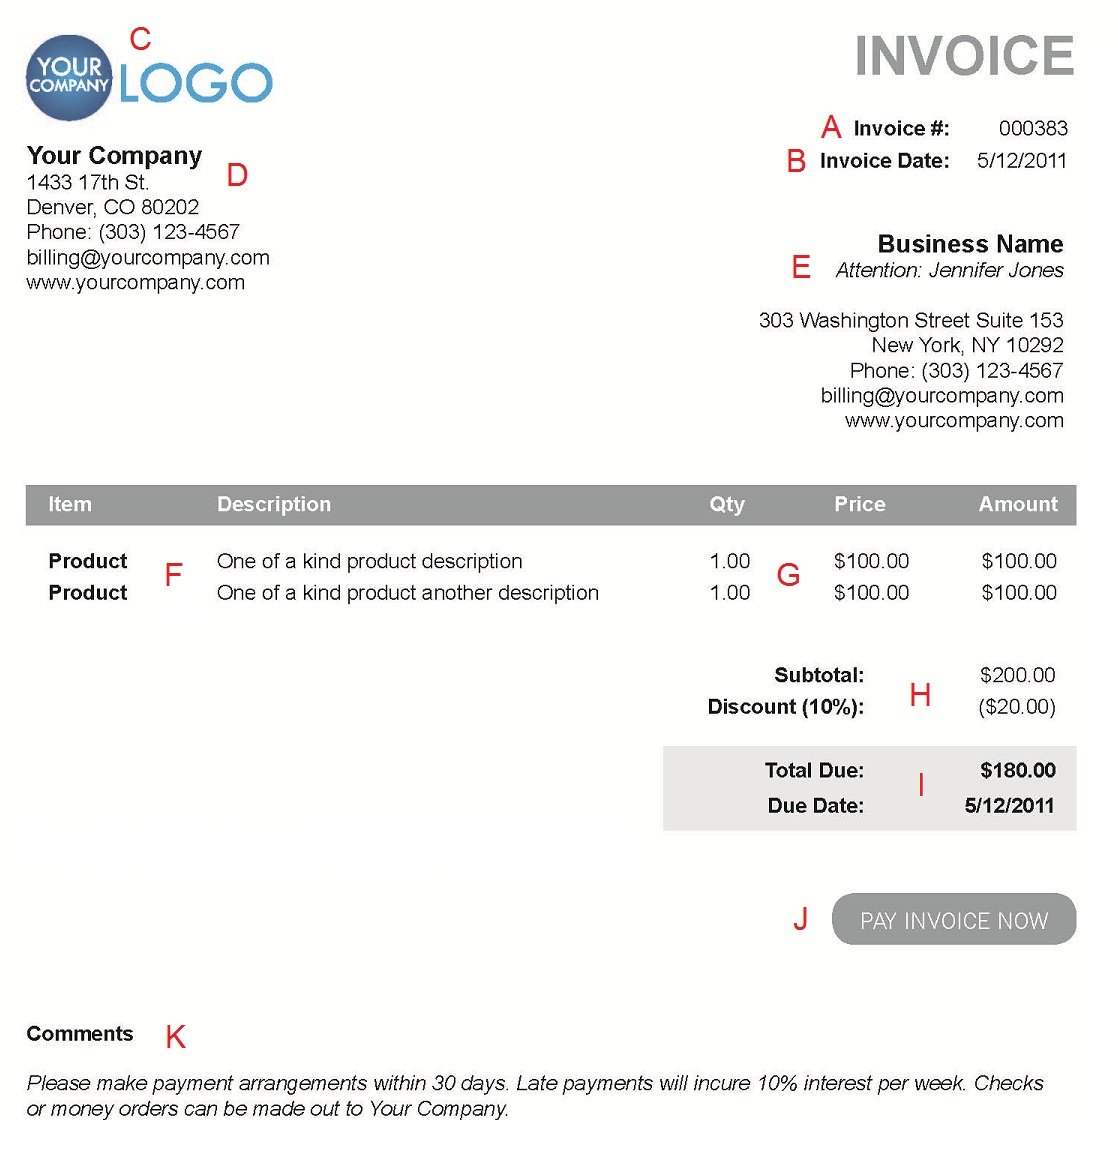 Ultrablogus  Personable The  Different Sections Of An Electronic Payment Invoice With Heavenly A  With Agreeable Invoice By Wave Also Office Invoice Template In Addition Rental Invoice And Fake Invoice As Well As Design Invoice Additionally Example Of An Invoice From Paysimplecom With Ultrablogus  Heavenly The  Different Sections Of An Electronic Payment Invoice With Agreeable A  And Personable Invoice By Wave Also Office Invoice Template In Addition Rental Invoice From Paysimplecom